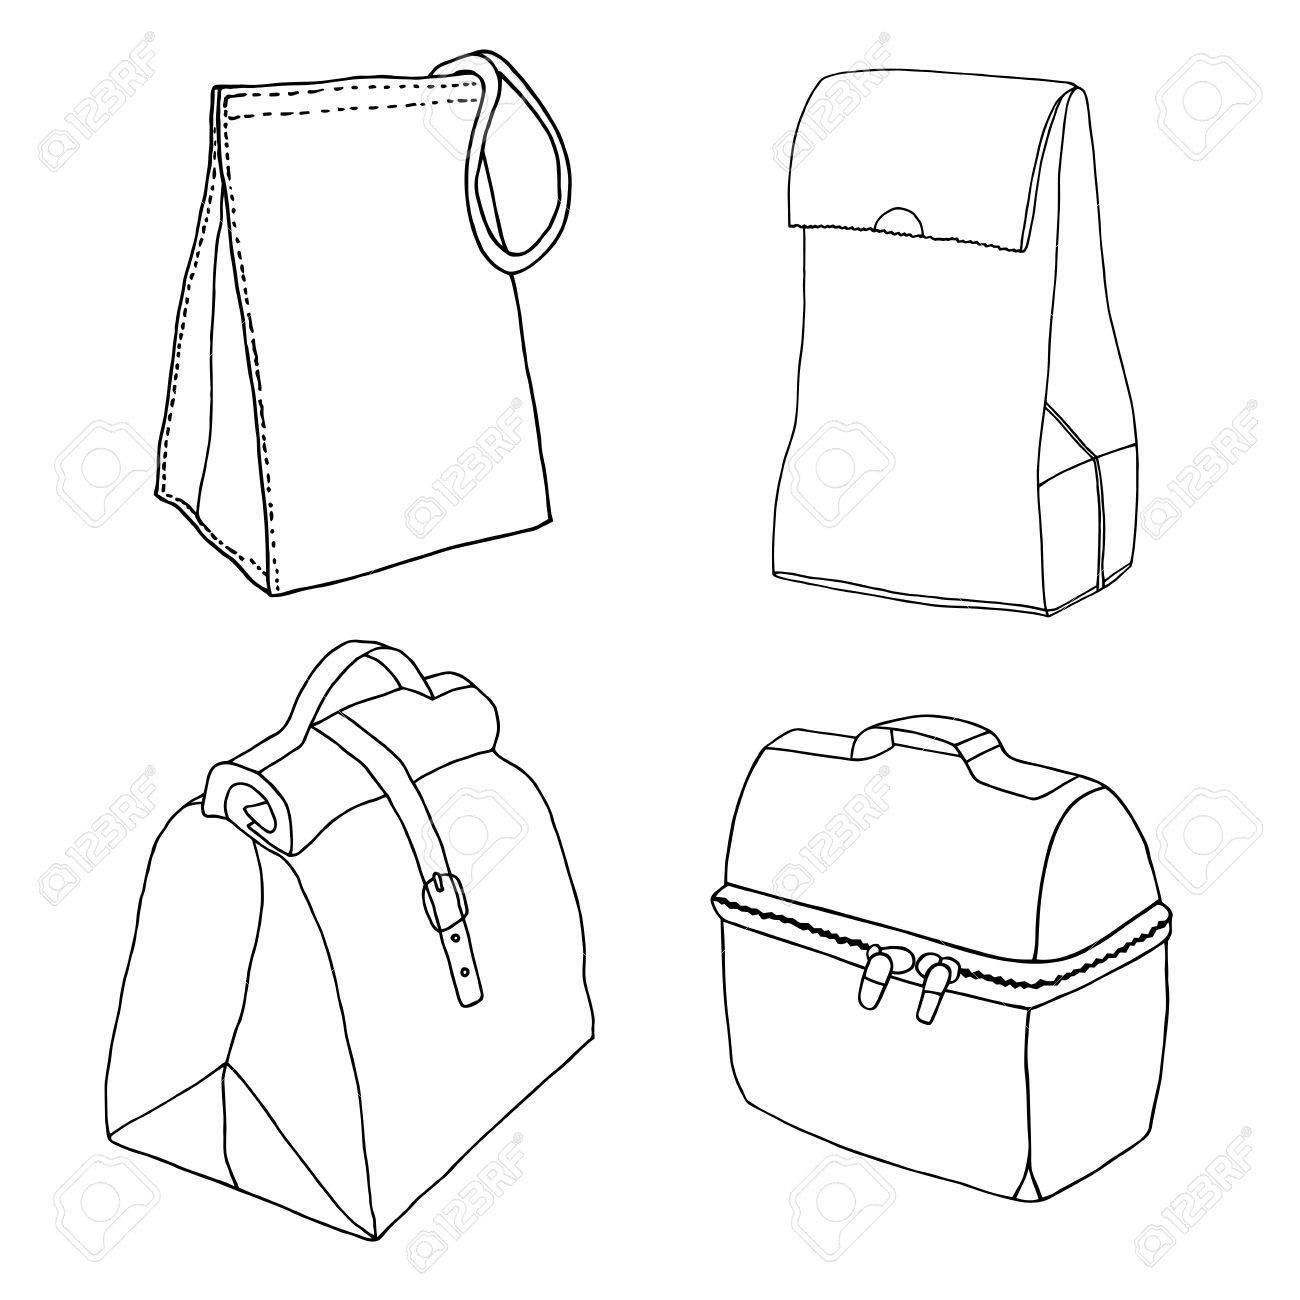 1300x1300 Lunch Bag Collection. Easy Lunch Box Concepts. Various Food Bags